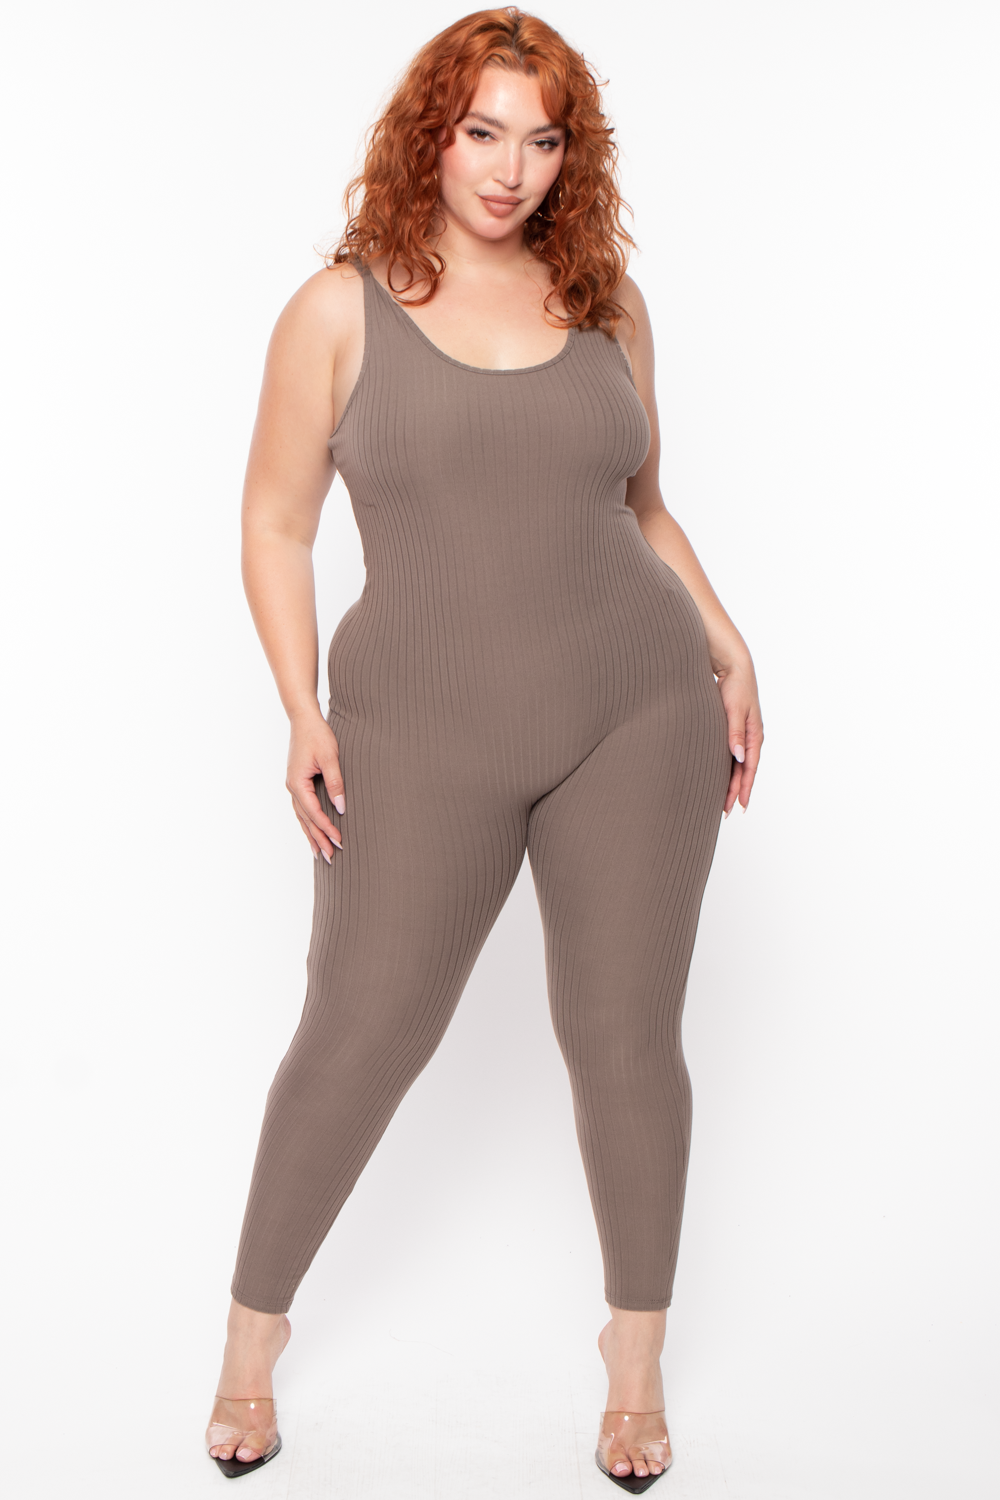 This plus size, stretch knit jumpsuit features a sleeveless design, a round neckline with tank straps a tapered skinny leg, and